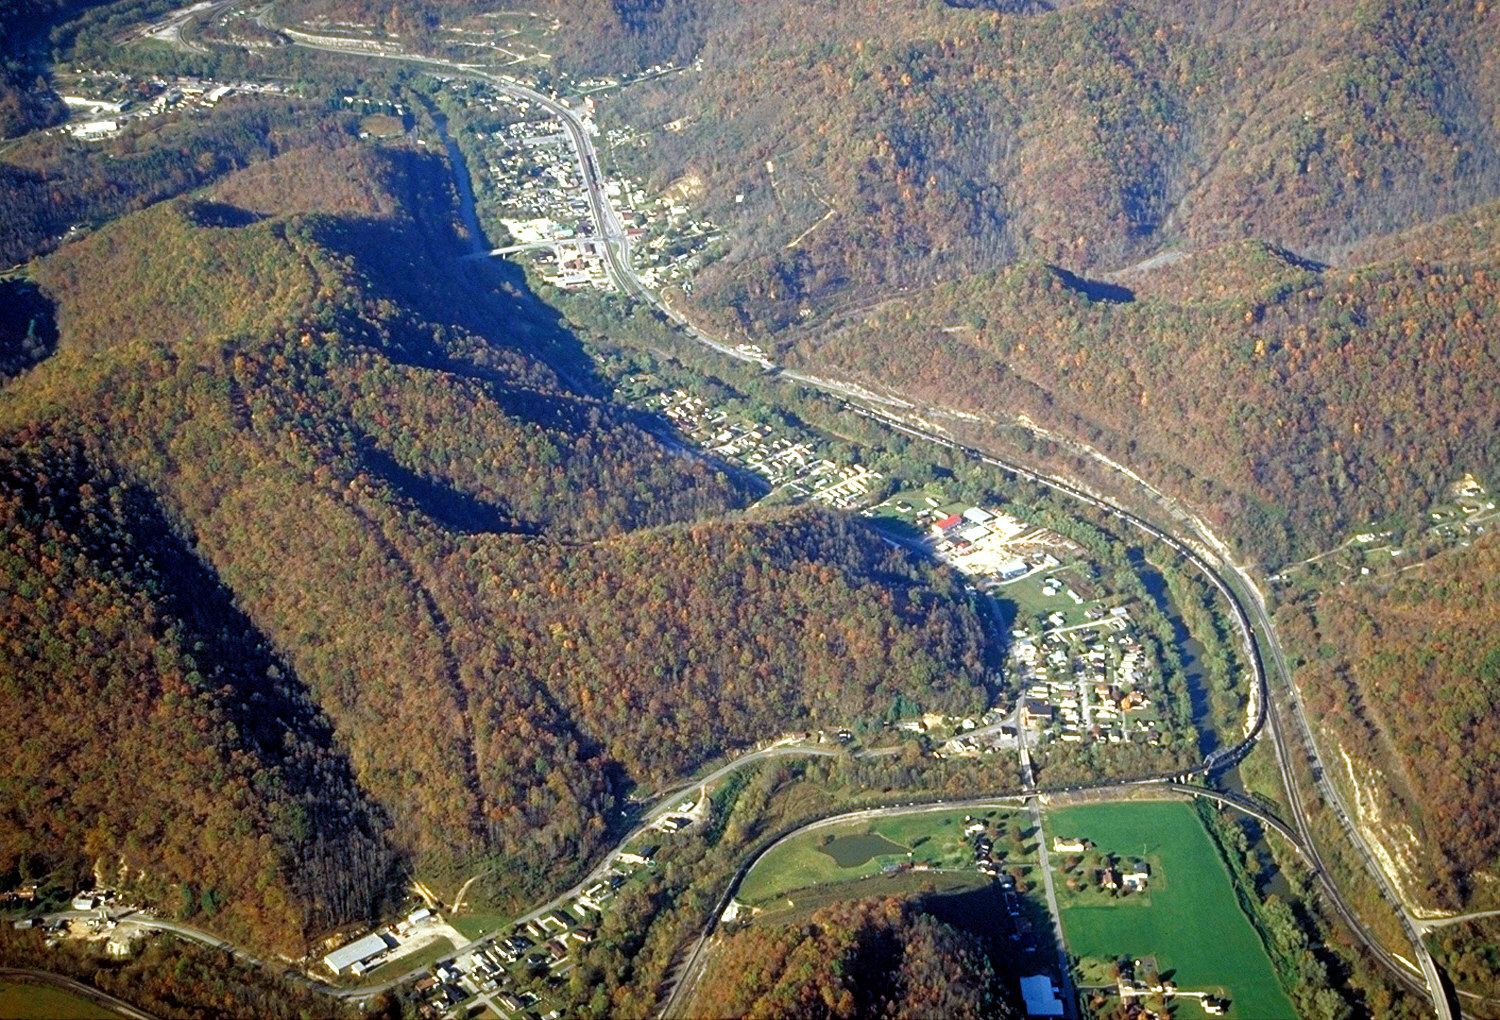 Tug River Valley with the town of Kermit on the right side of river, top of photo.